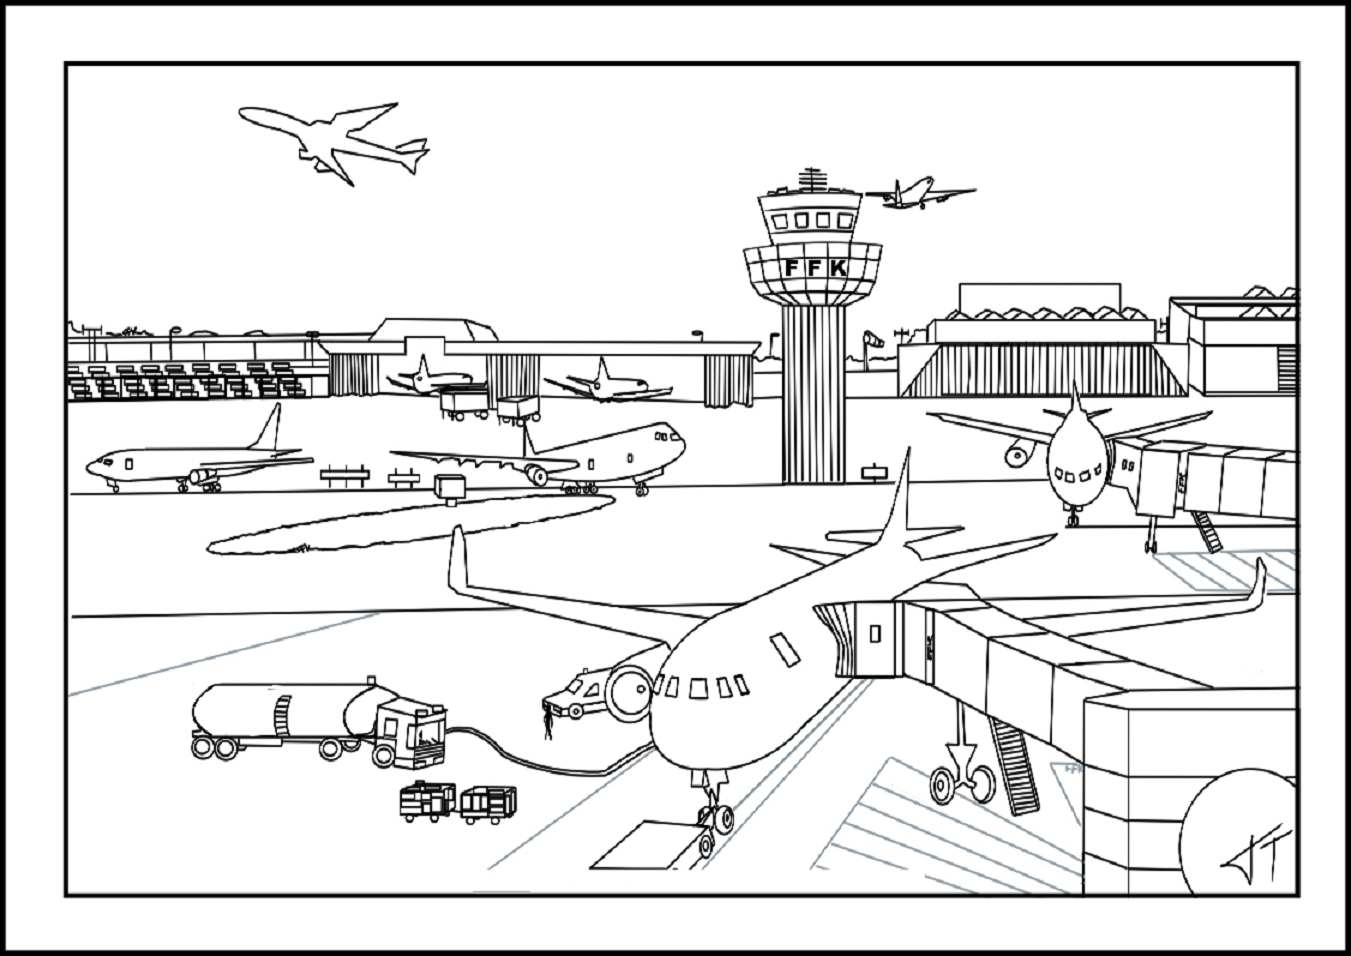 southwest airplane coloring pages - photo#11